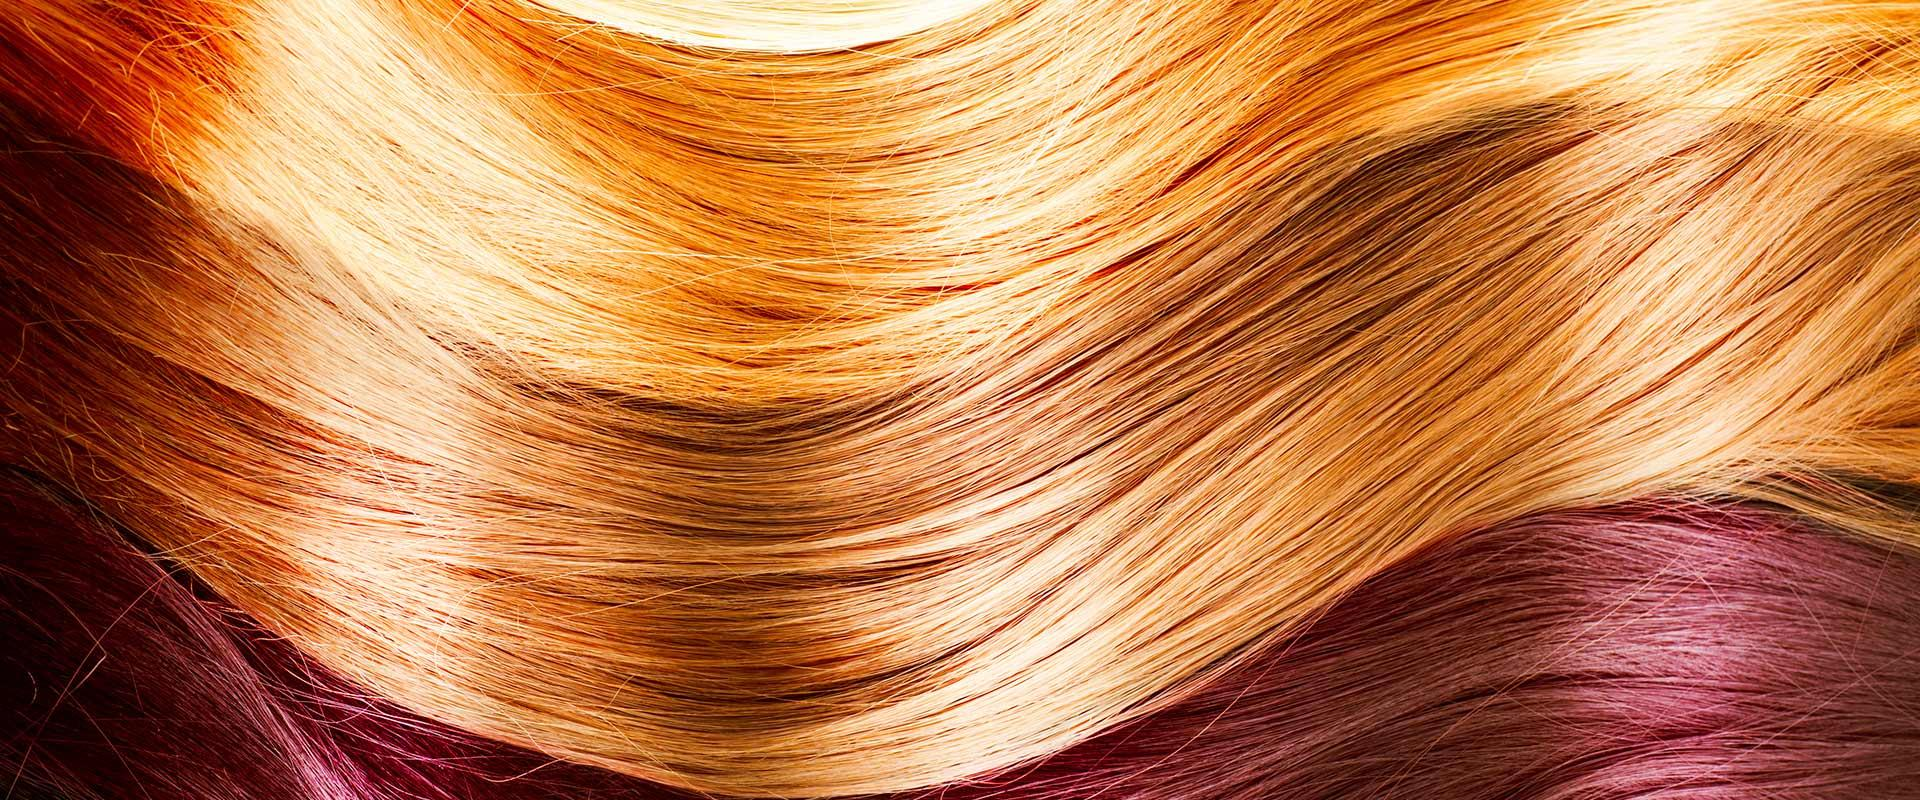 Permanent Hair Dye - Ingredient | Inside our products - L'Oréal